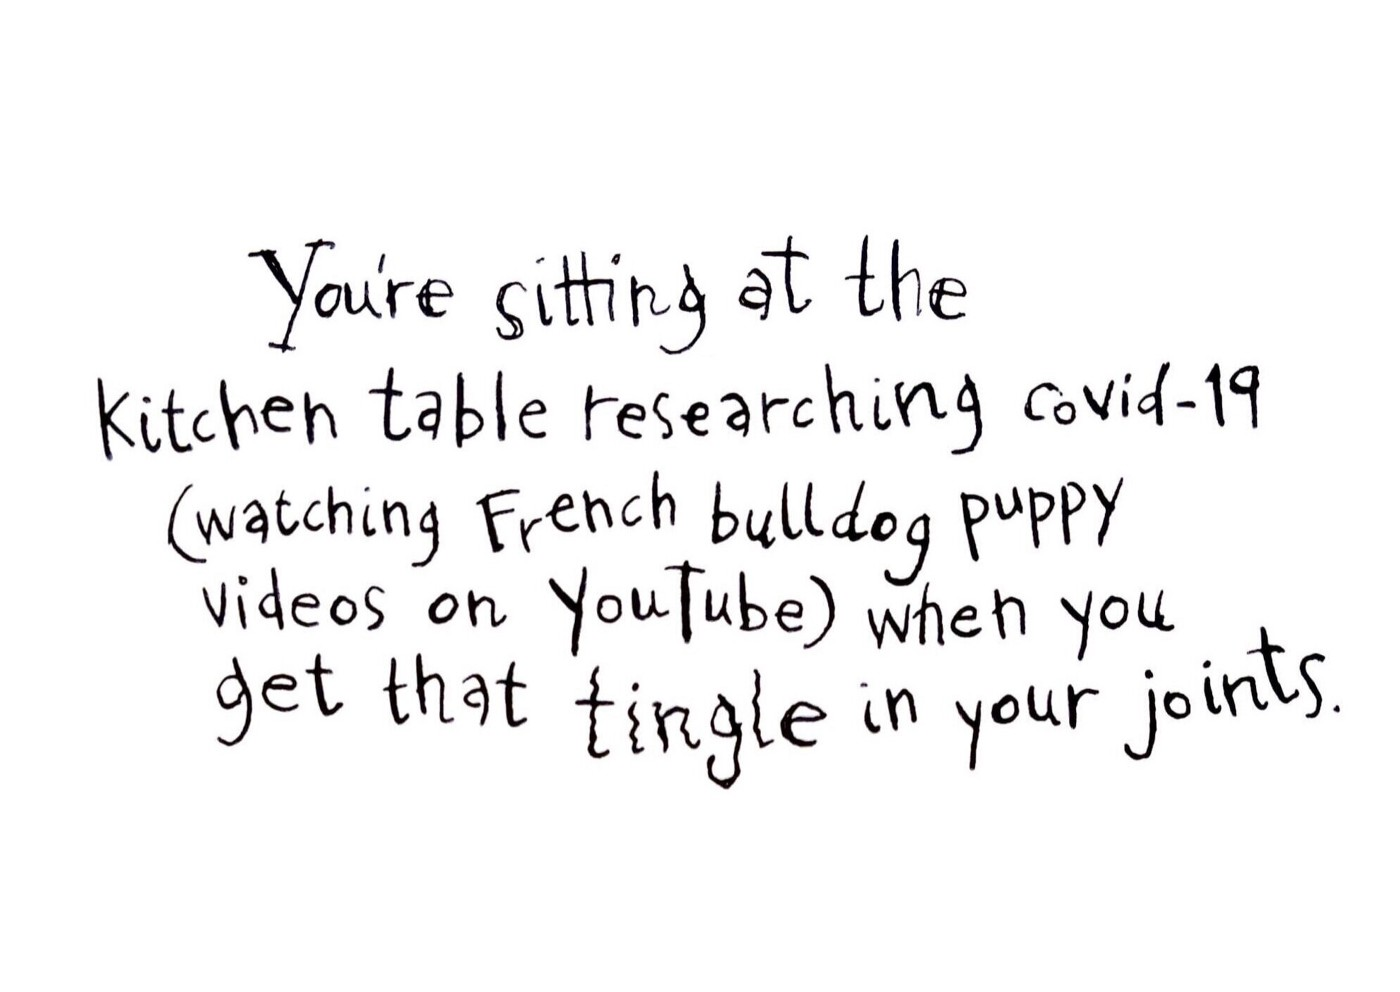 You're sitting at the kitchen table researching COVID-19 (watching puppy videos) when you get that tingle in your joints